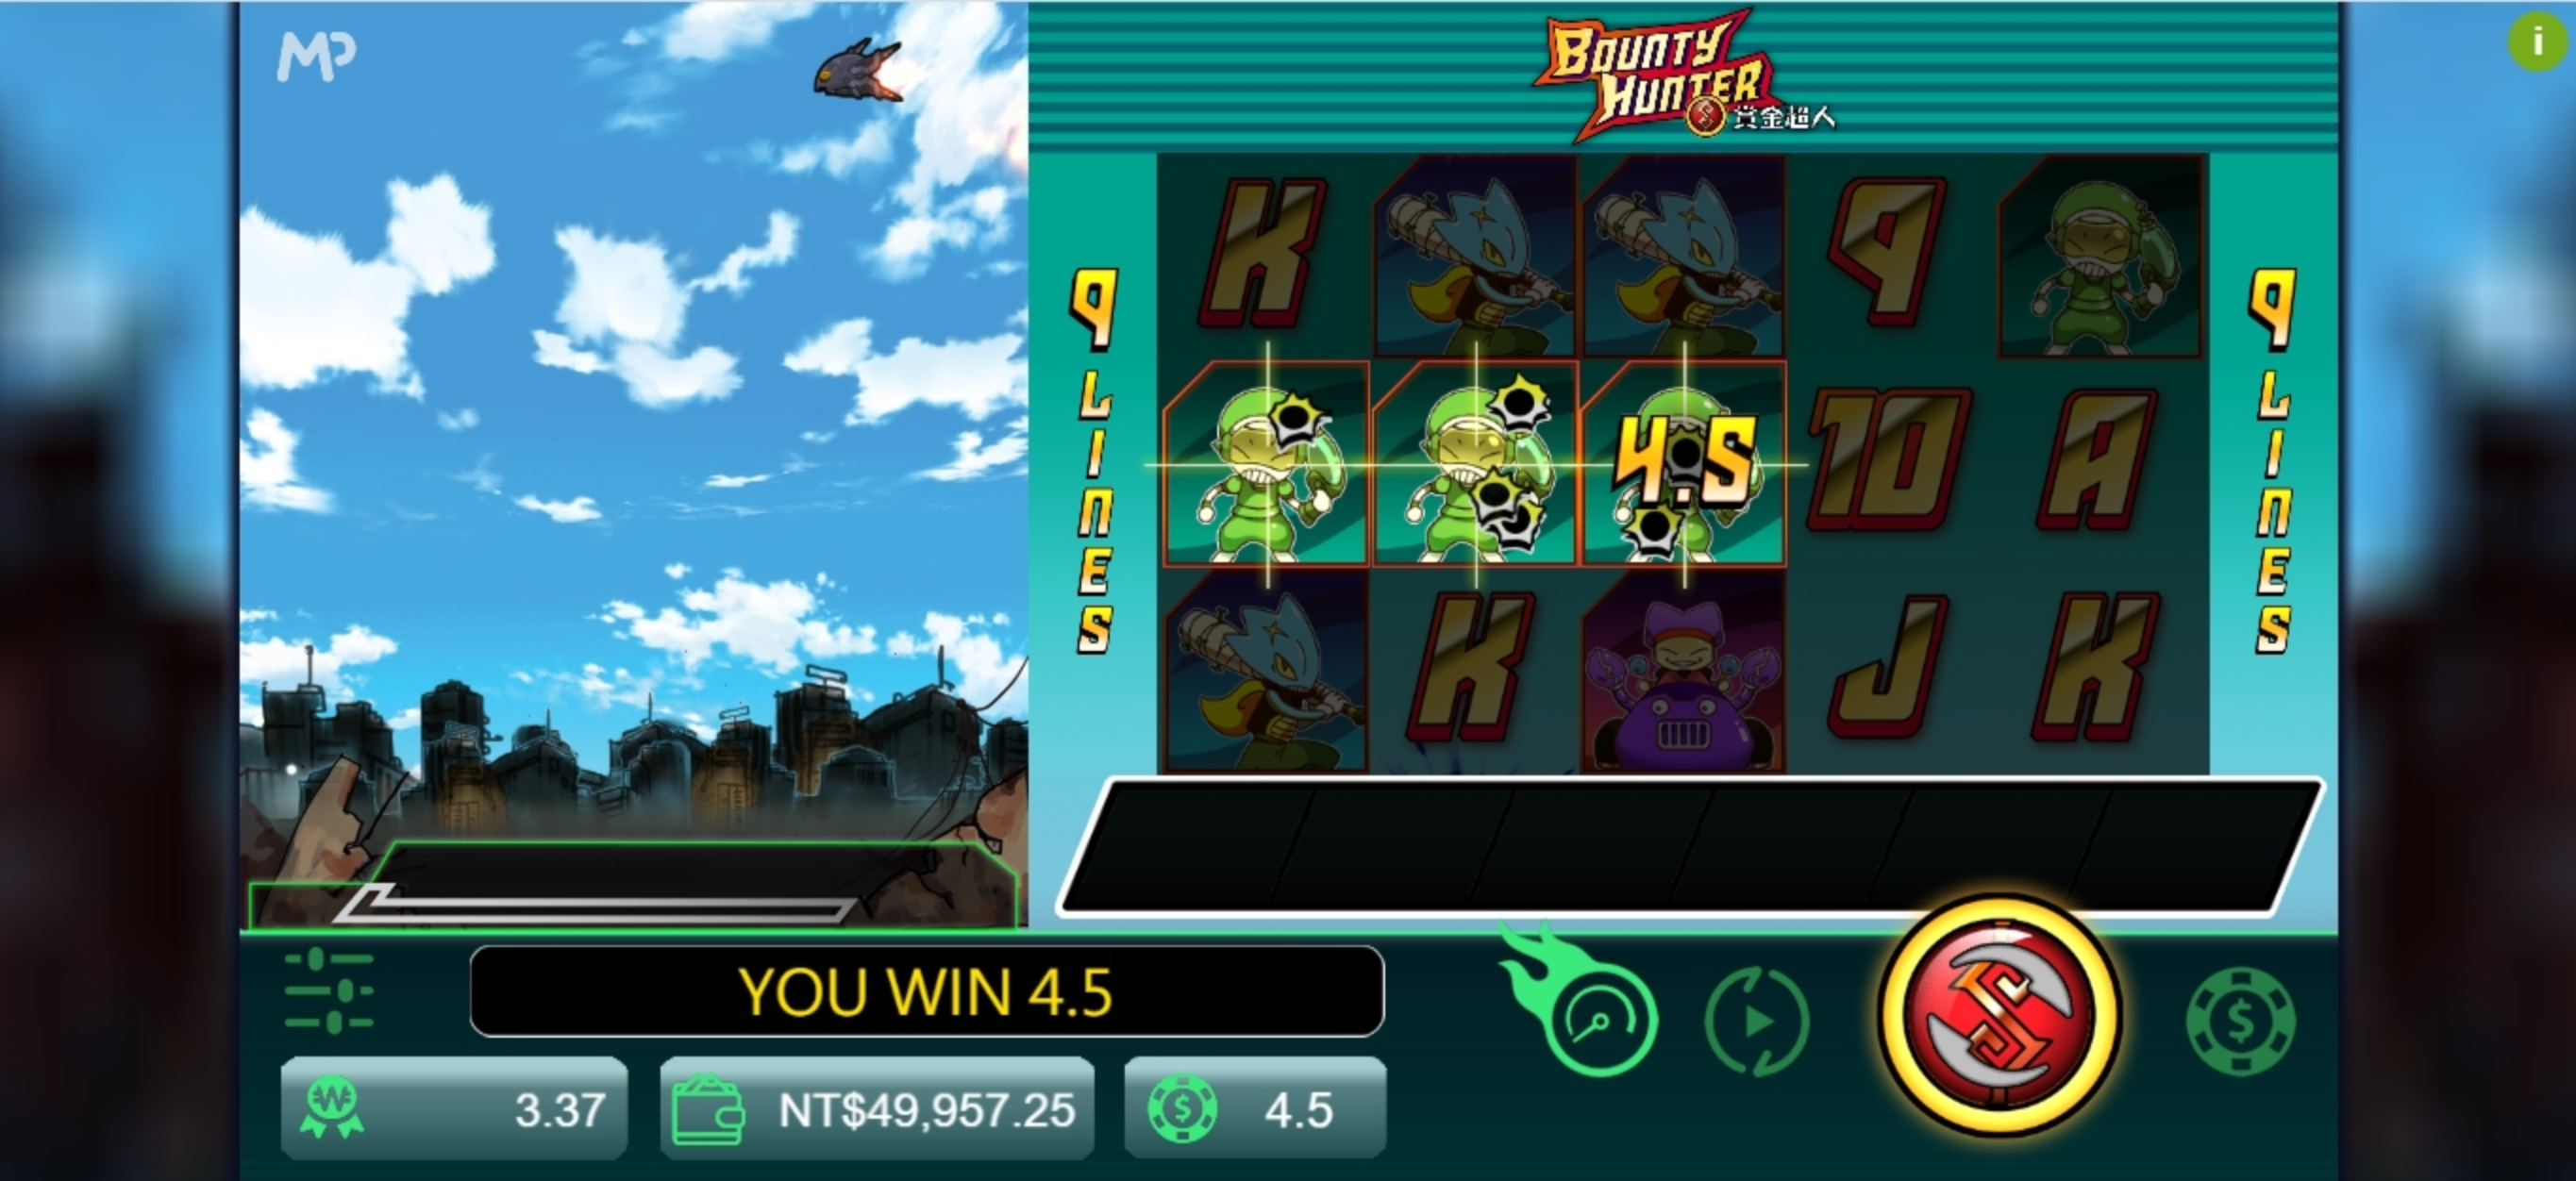 Win Money in Bounty Hunter (Manna Play) Free Slot Game by Manna Play